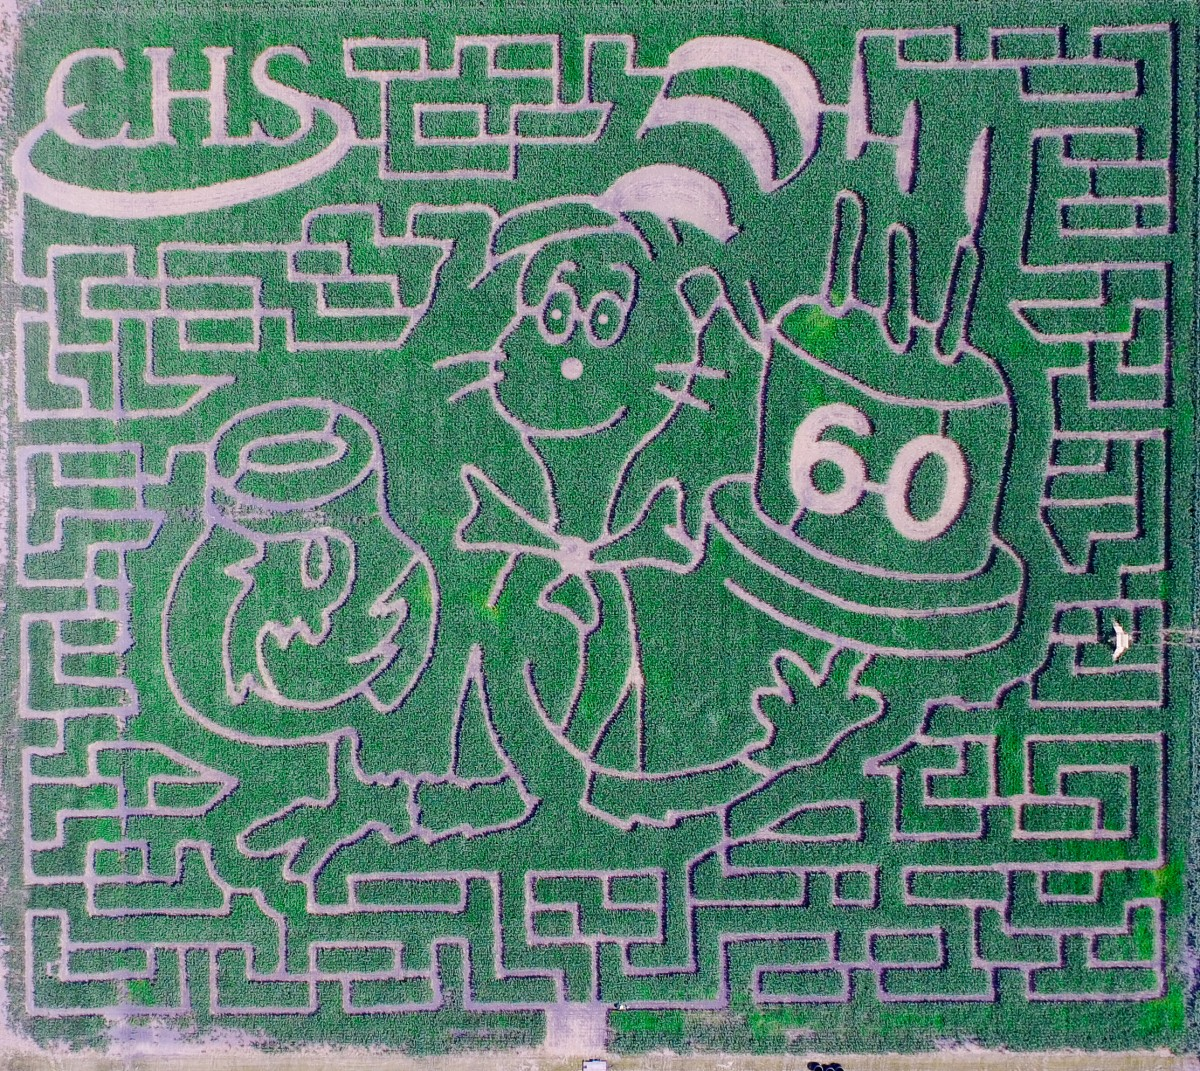 The Valley Corn Maize opens this weekend at K&D Krueger Farms and Sons just outside of East Grand Forks. The theme for this year is Dr. Seuss's The Cat in ...